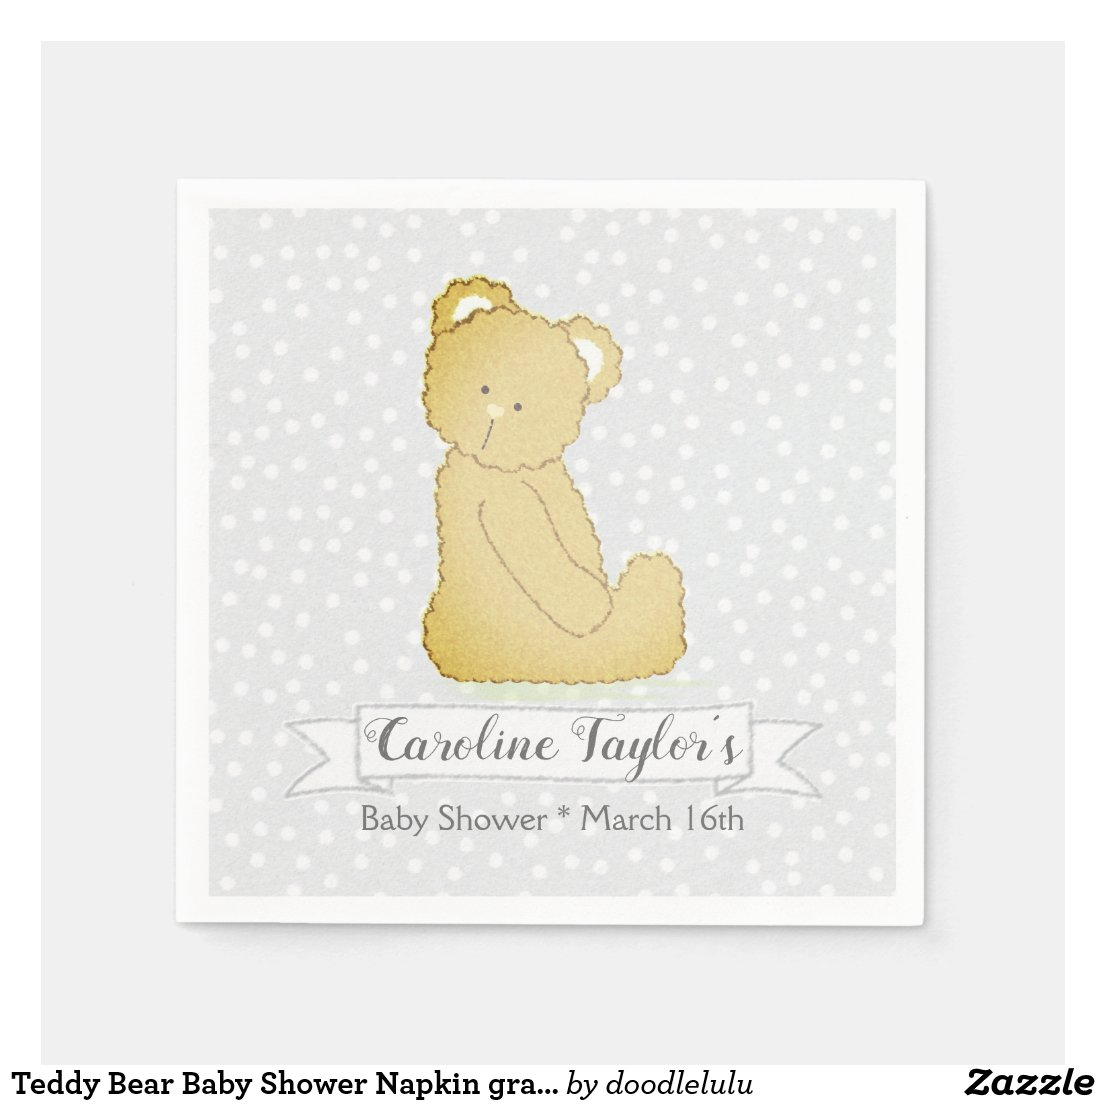 Teddy Bear Baby Shower Napkin gray and brown